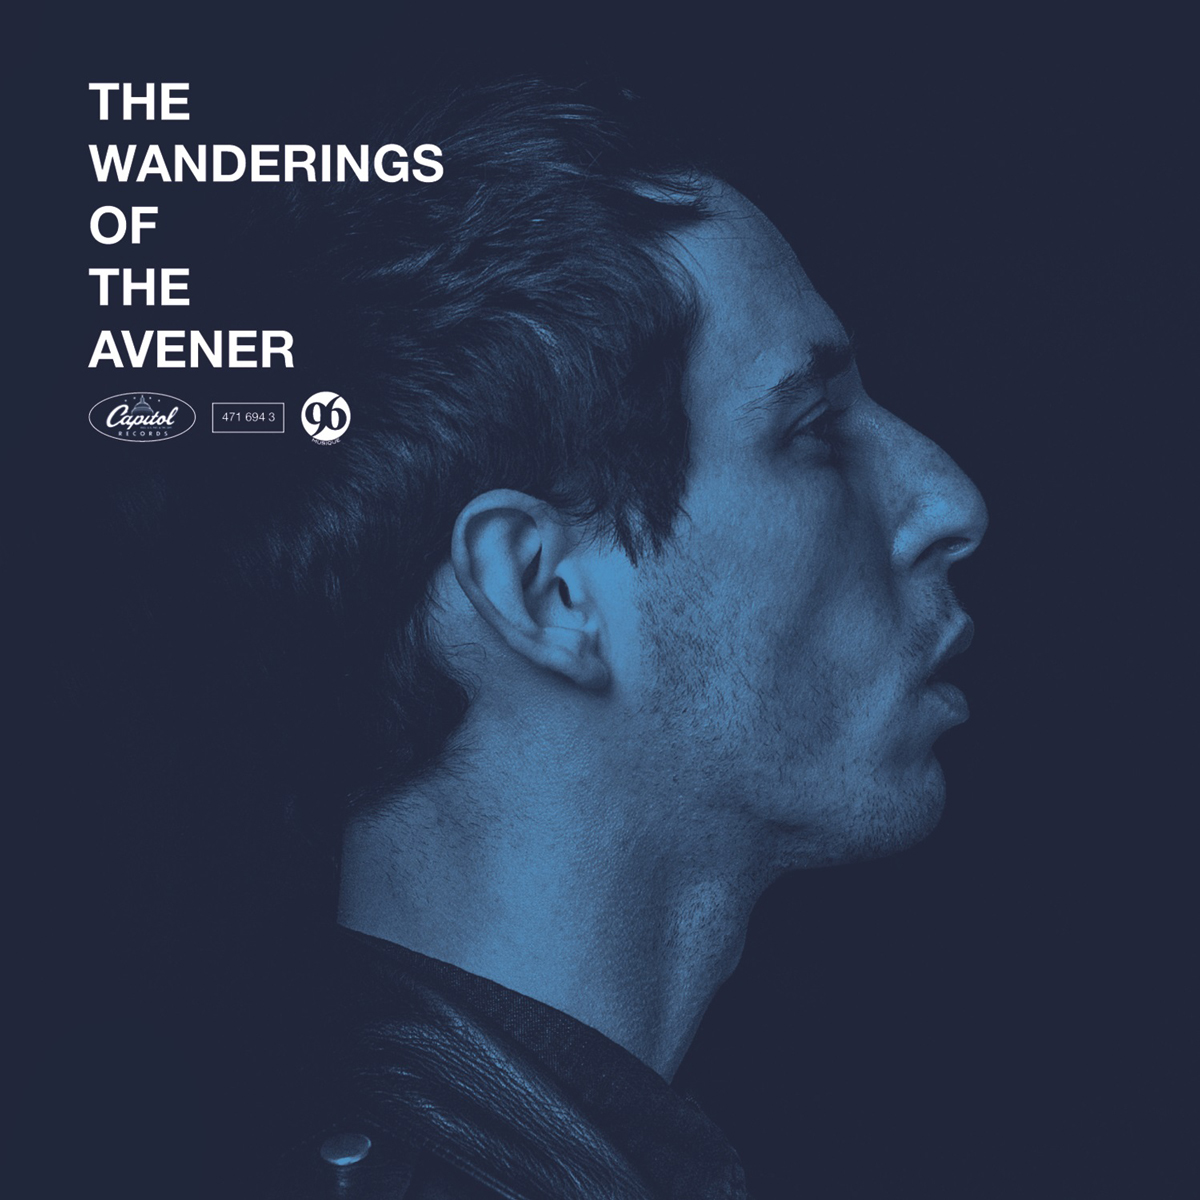 The-Wanderings-of-The-Avener_Album_Cover